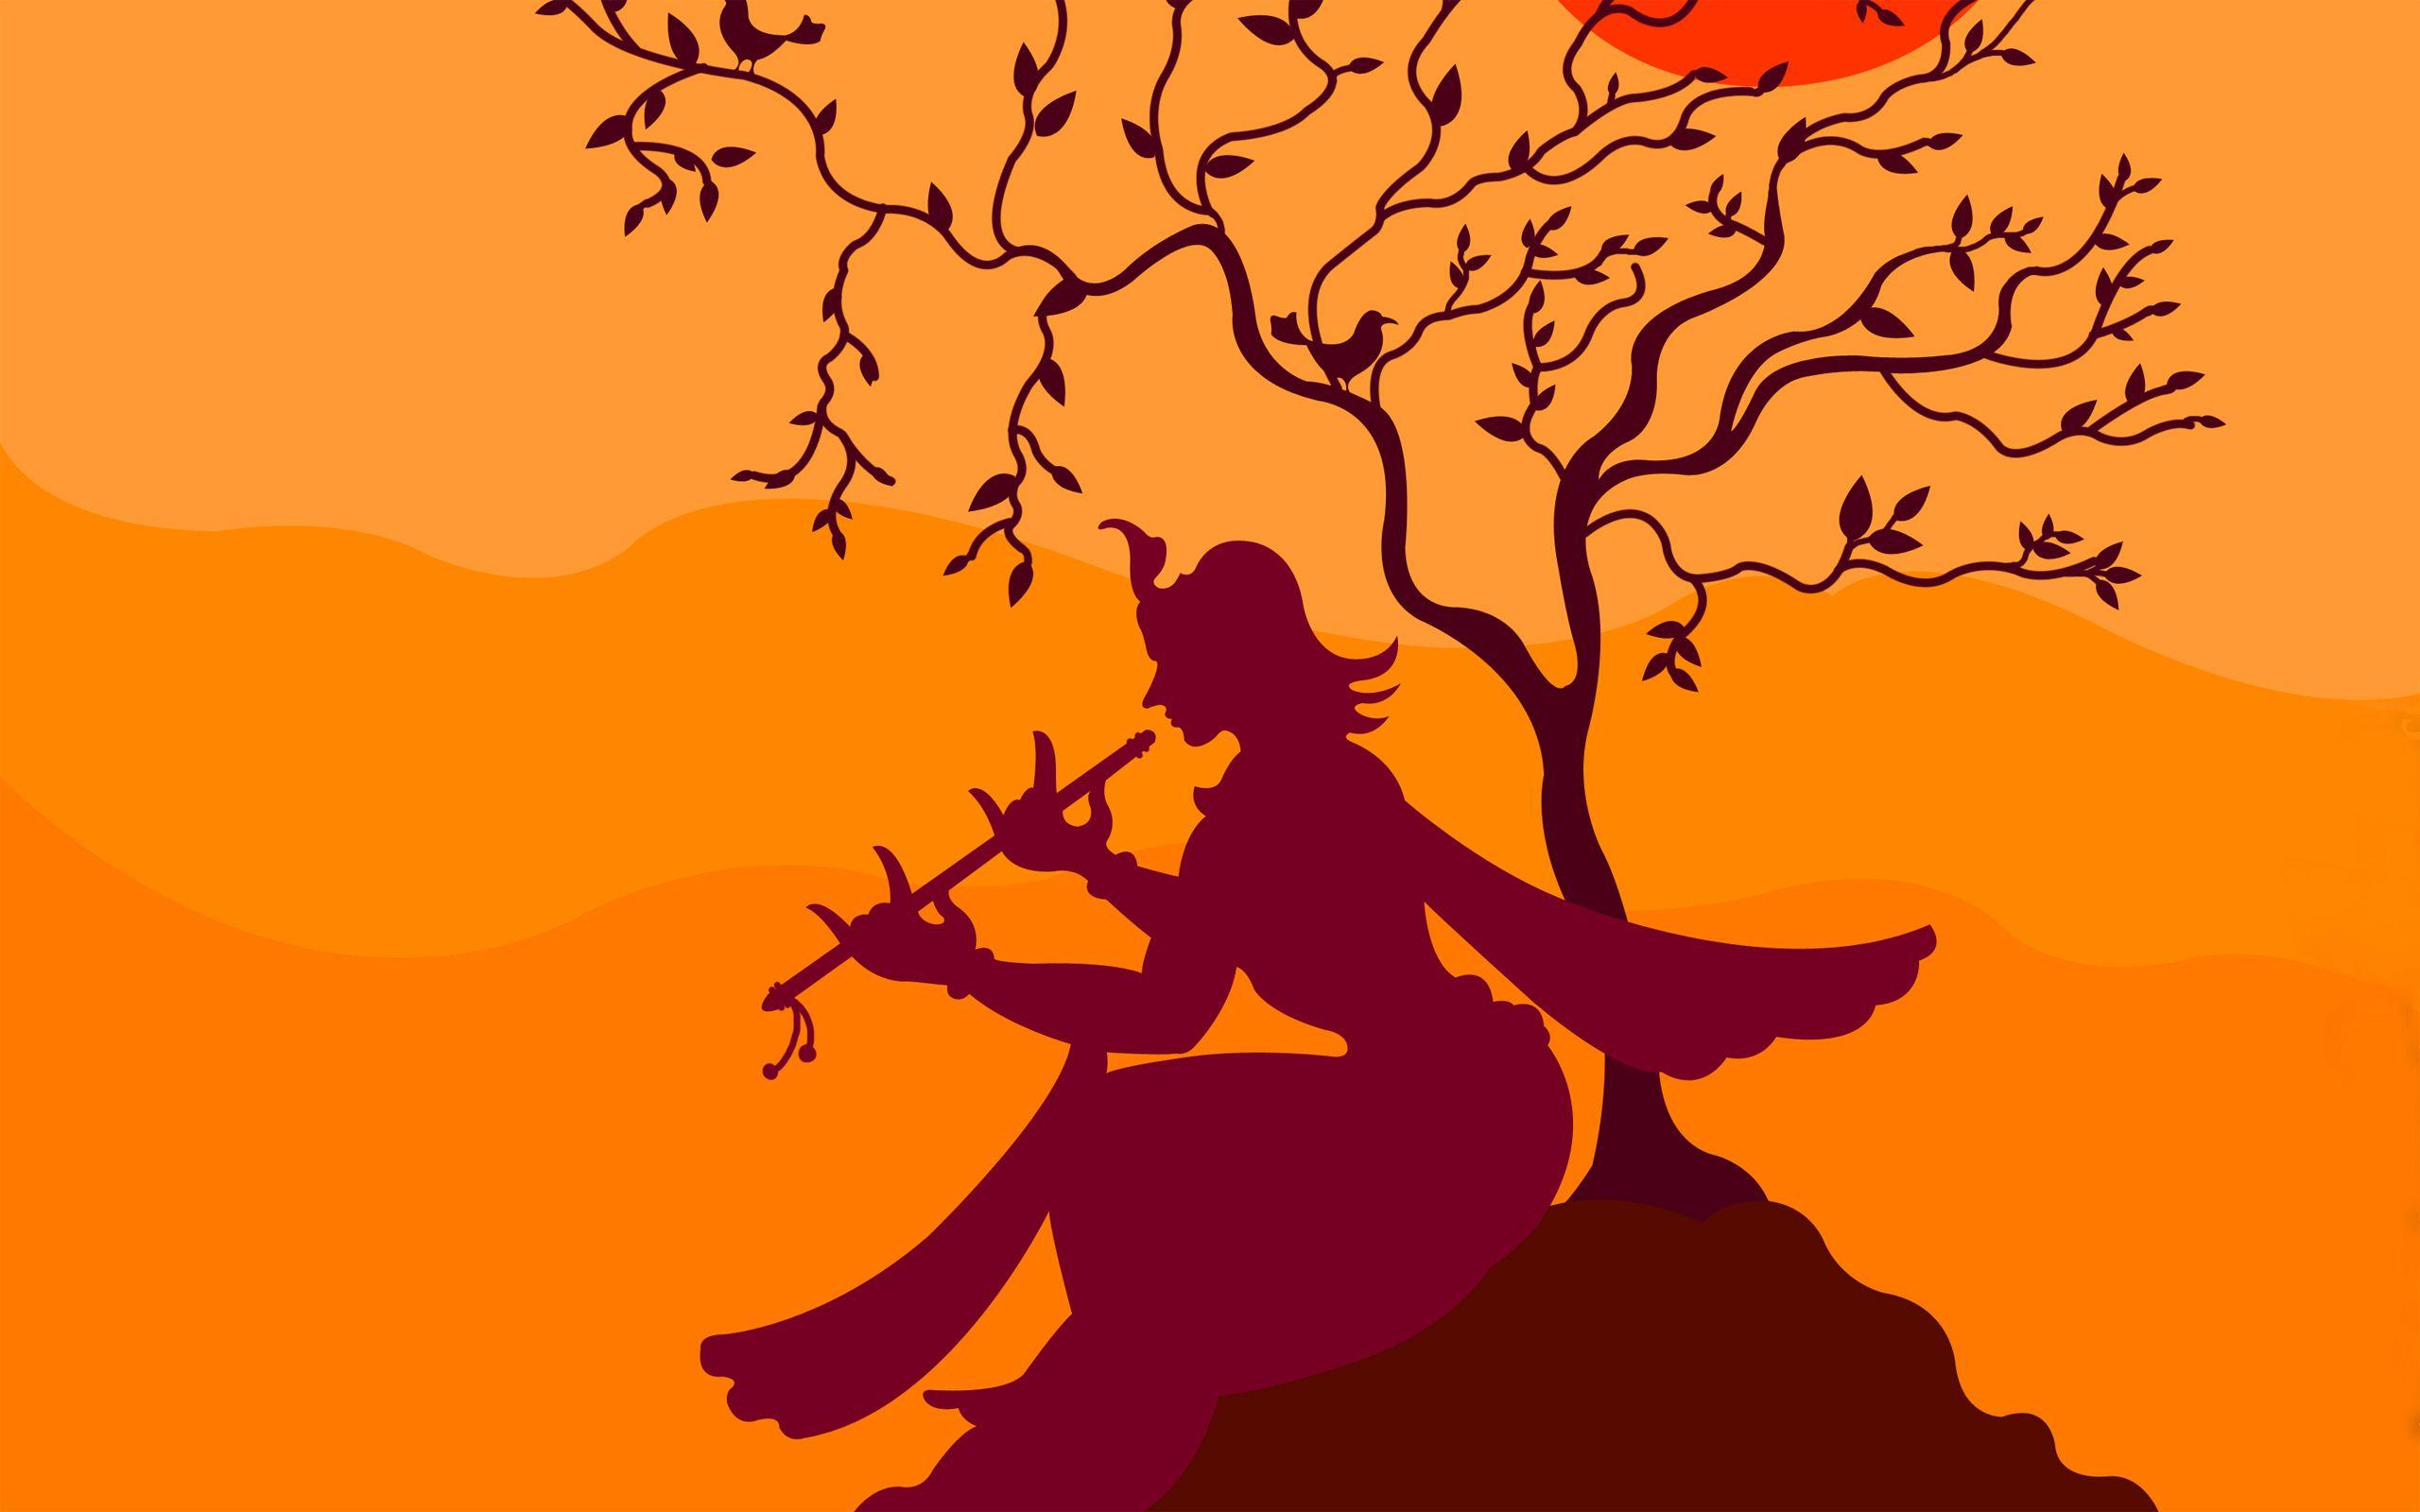 Krishna Playing Flute Under Tree Wallpapers - 2560x1600 - 836870